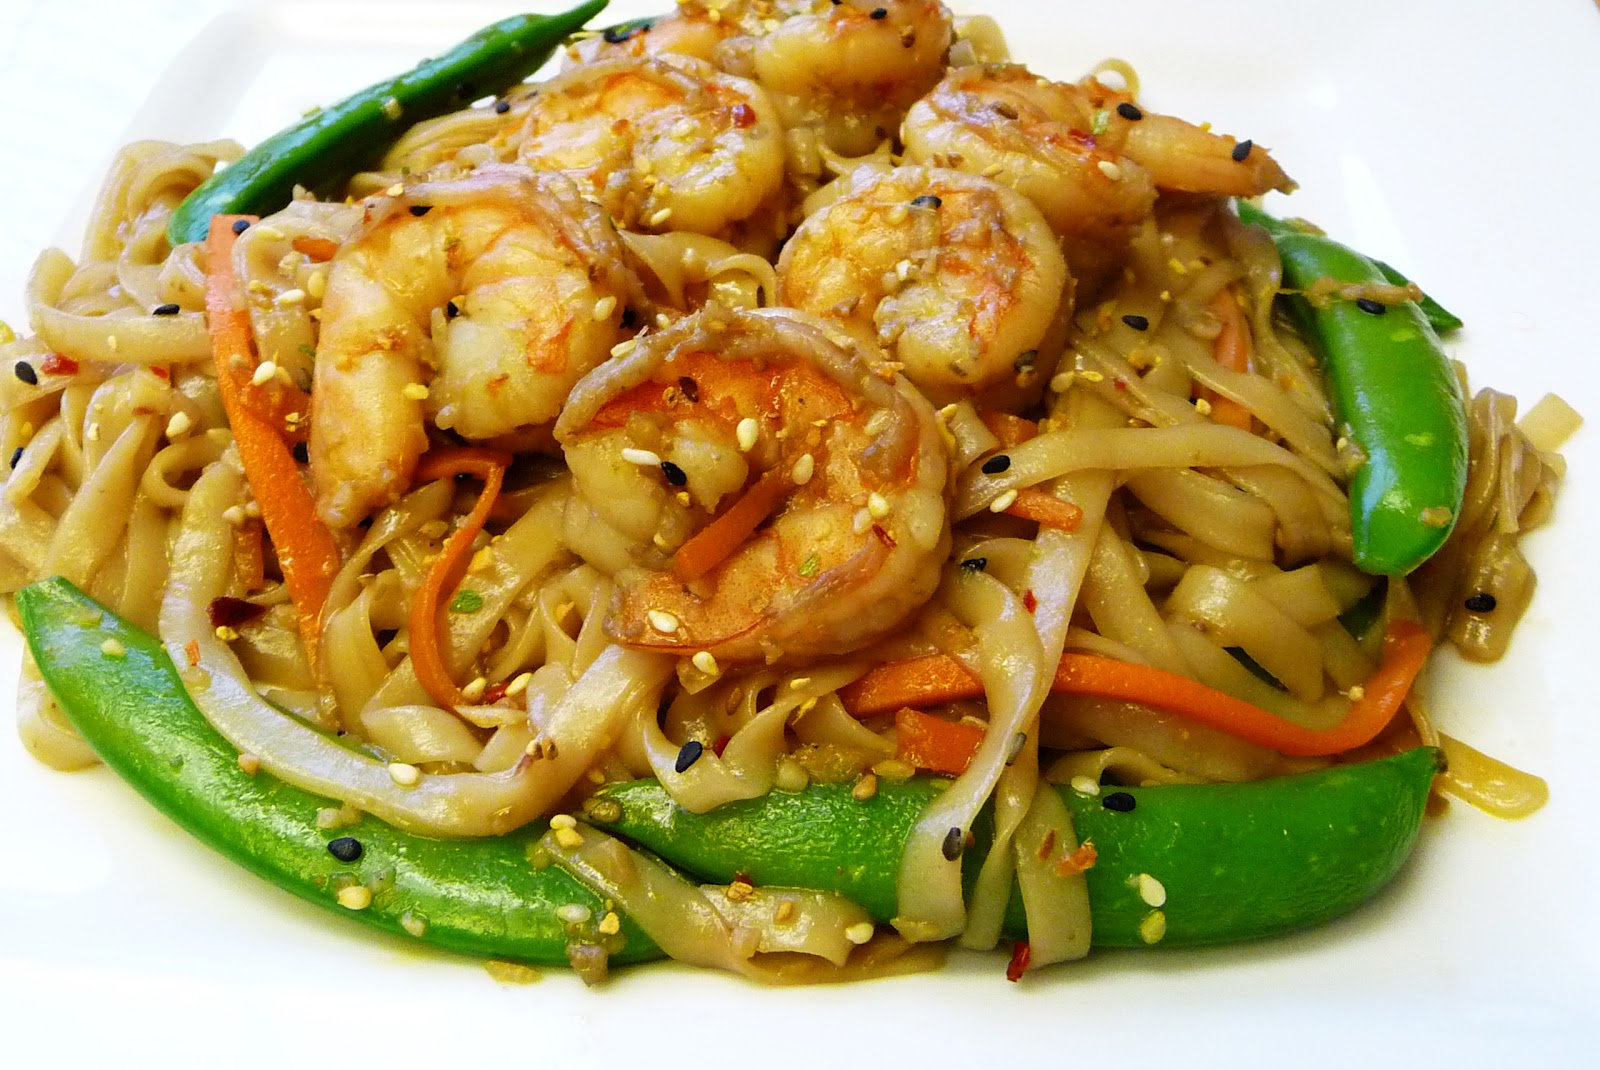 Download image Shrimp Rice Noodle Stir Fry Recipe PC, Android, iPhone ...